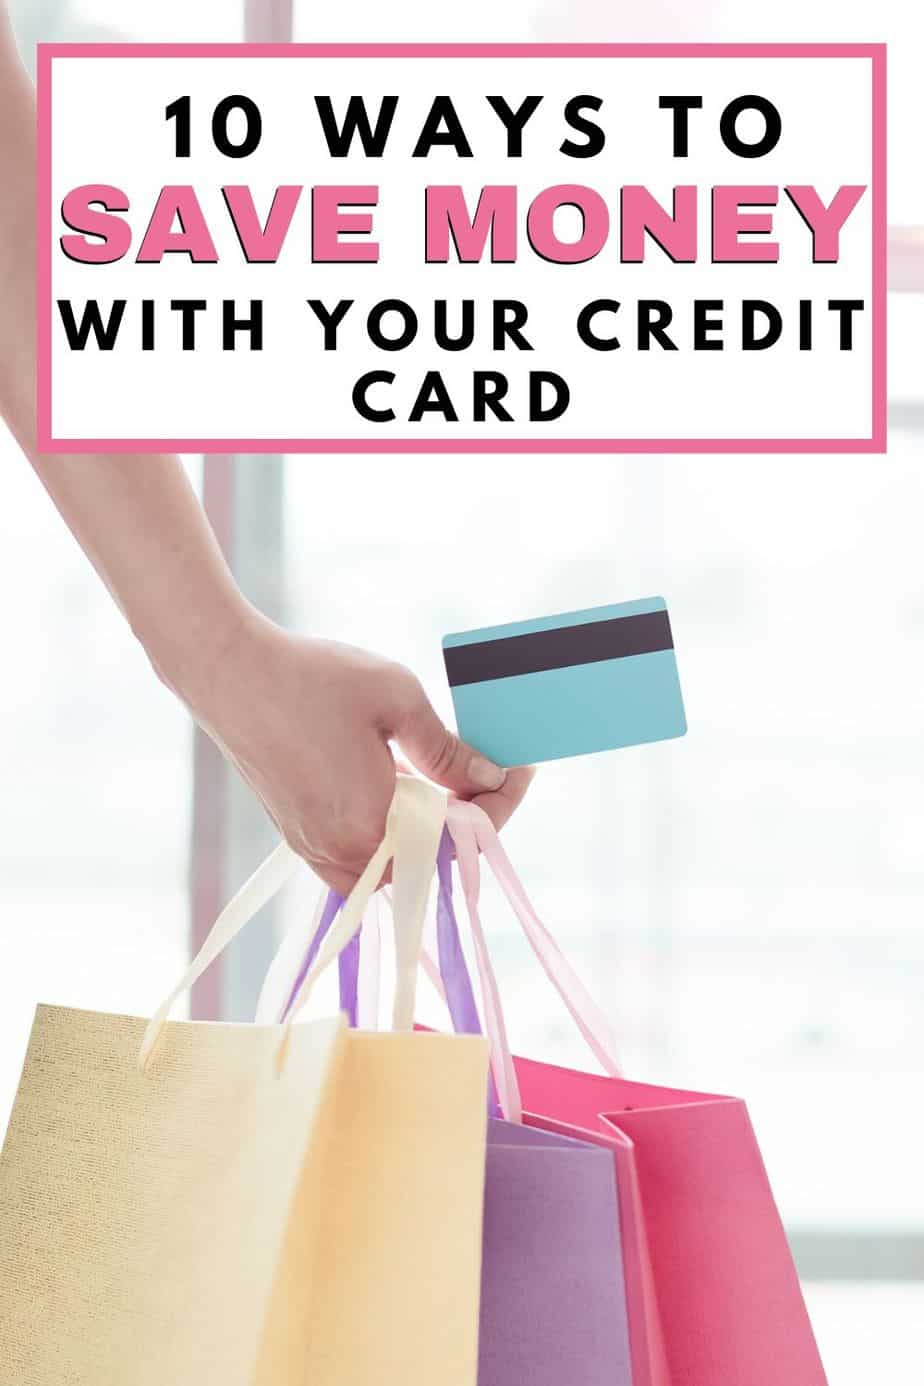 10 ways to save money with your credit card